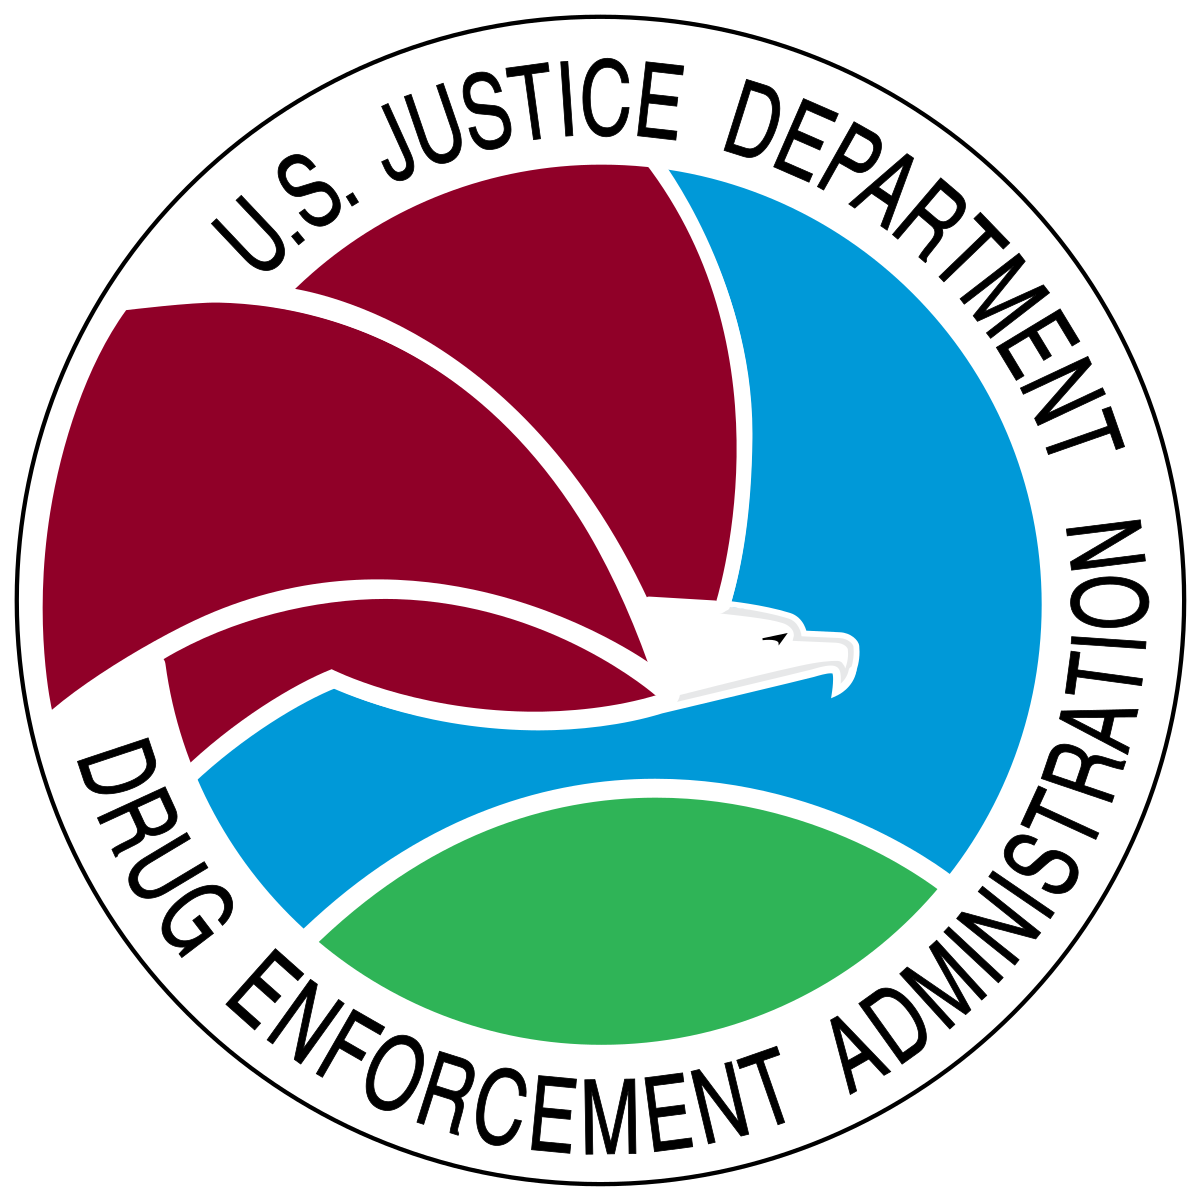 Drug Enforcement Administration (DEA)